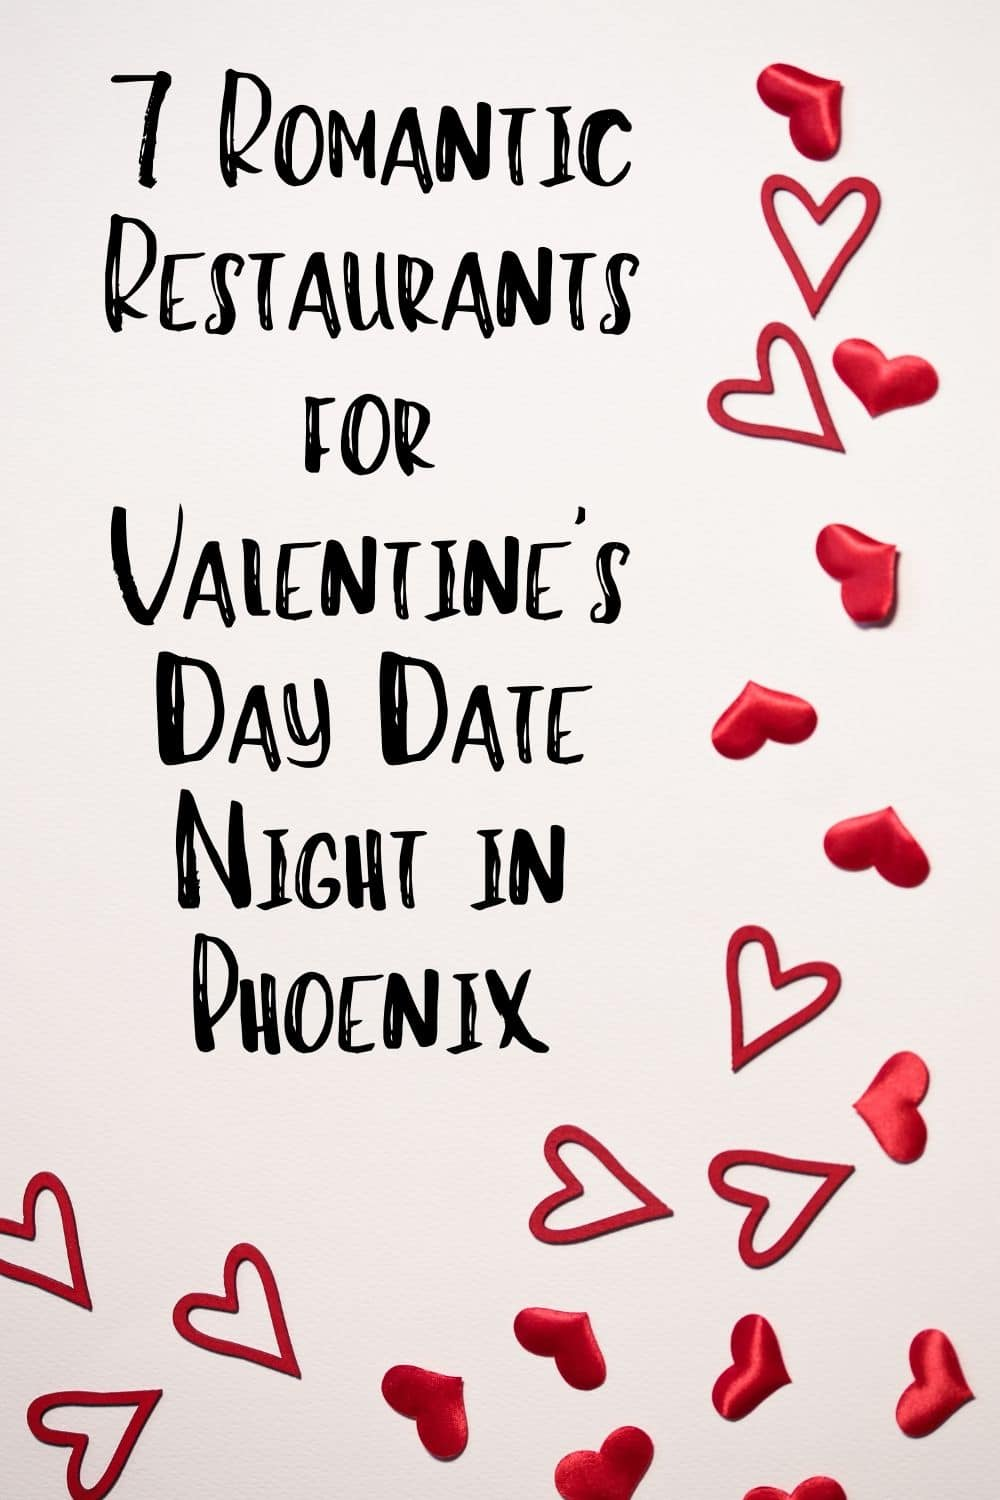 Valentine's Day in Phoenix is one of those times when you'll be glad to live in a city that has so many awesome restaurants. These Phoenix restaurants are perfect for a Valentine's Day date night!